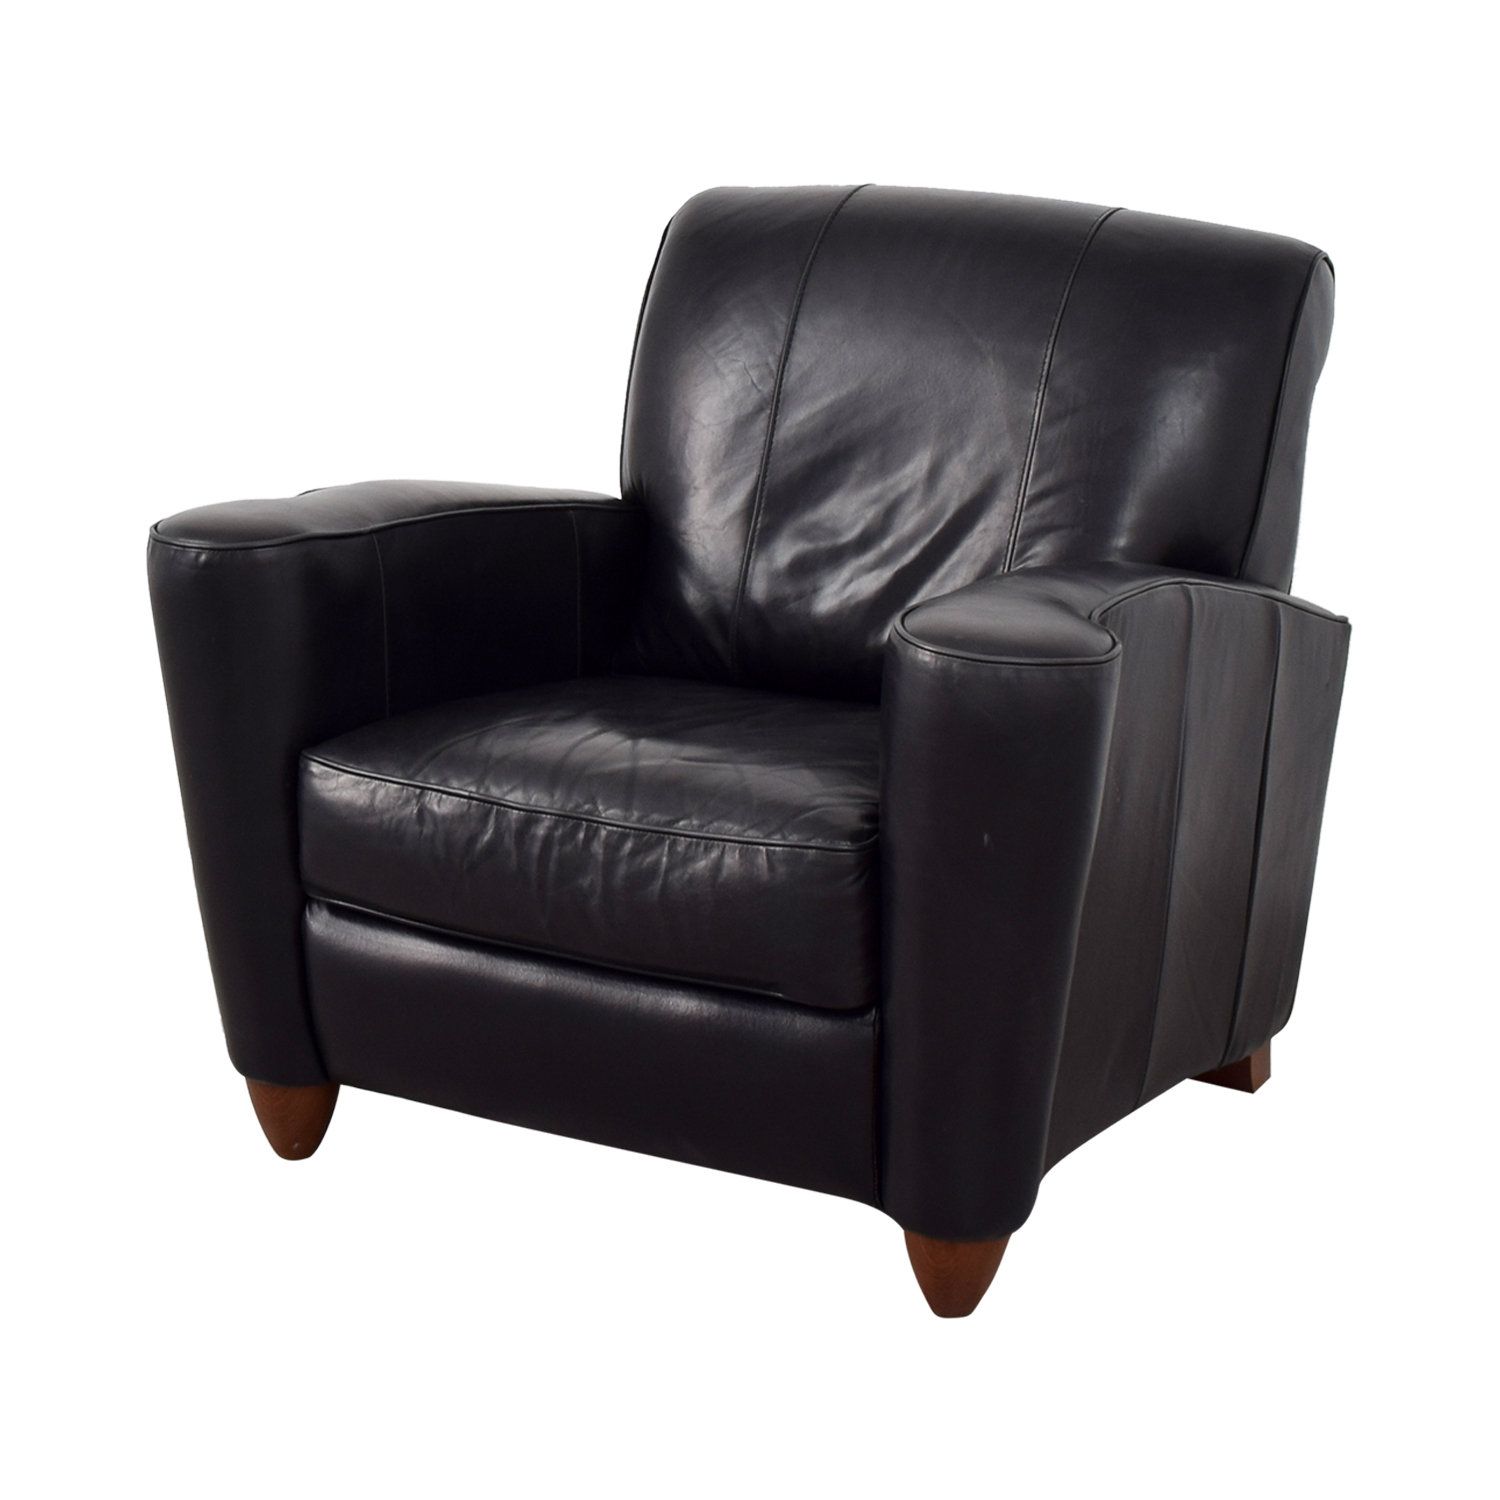 76 off leather library reading chair chairs. Black Bedroom Furniture Sets. Home Design Ideas